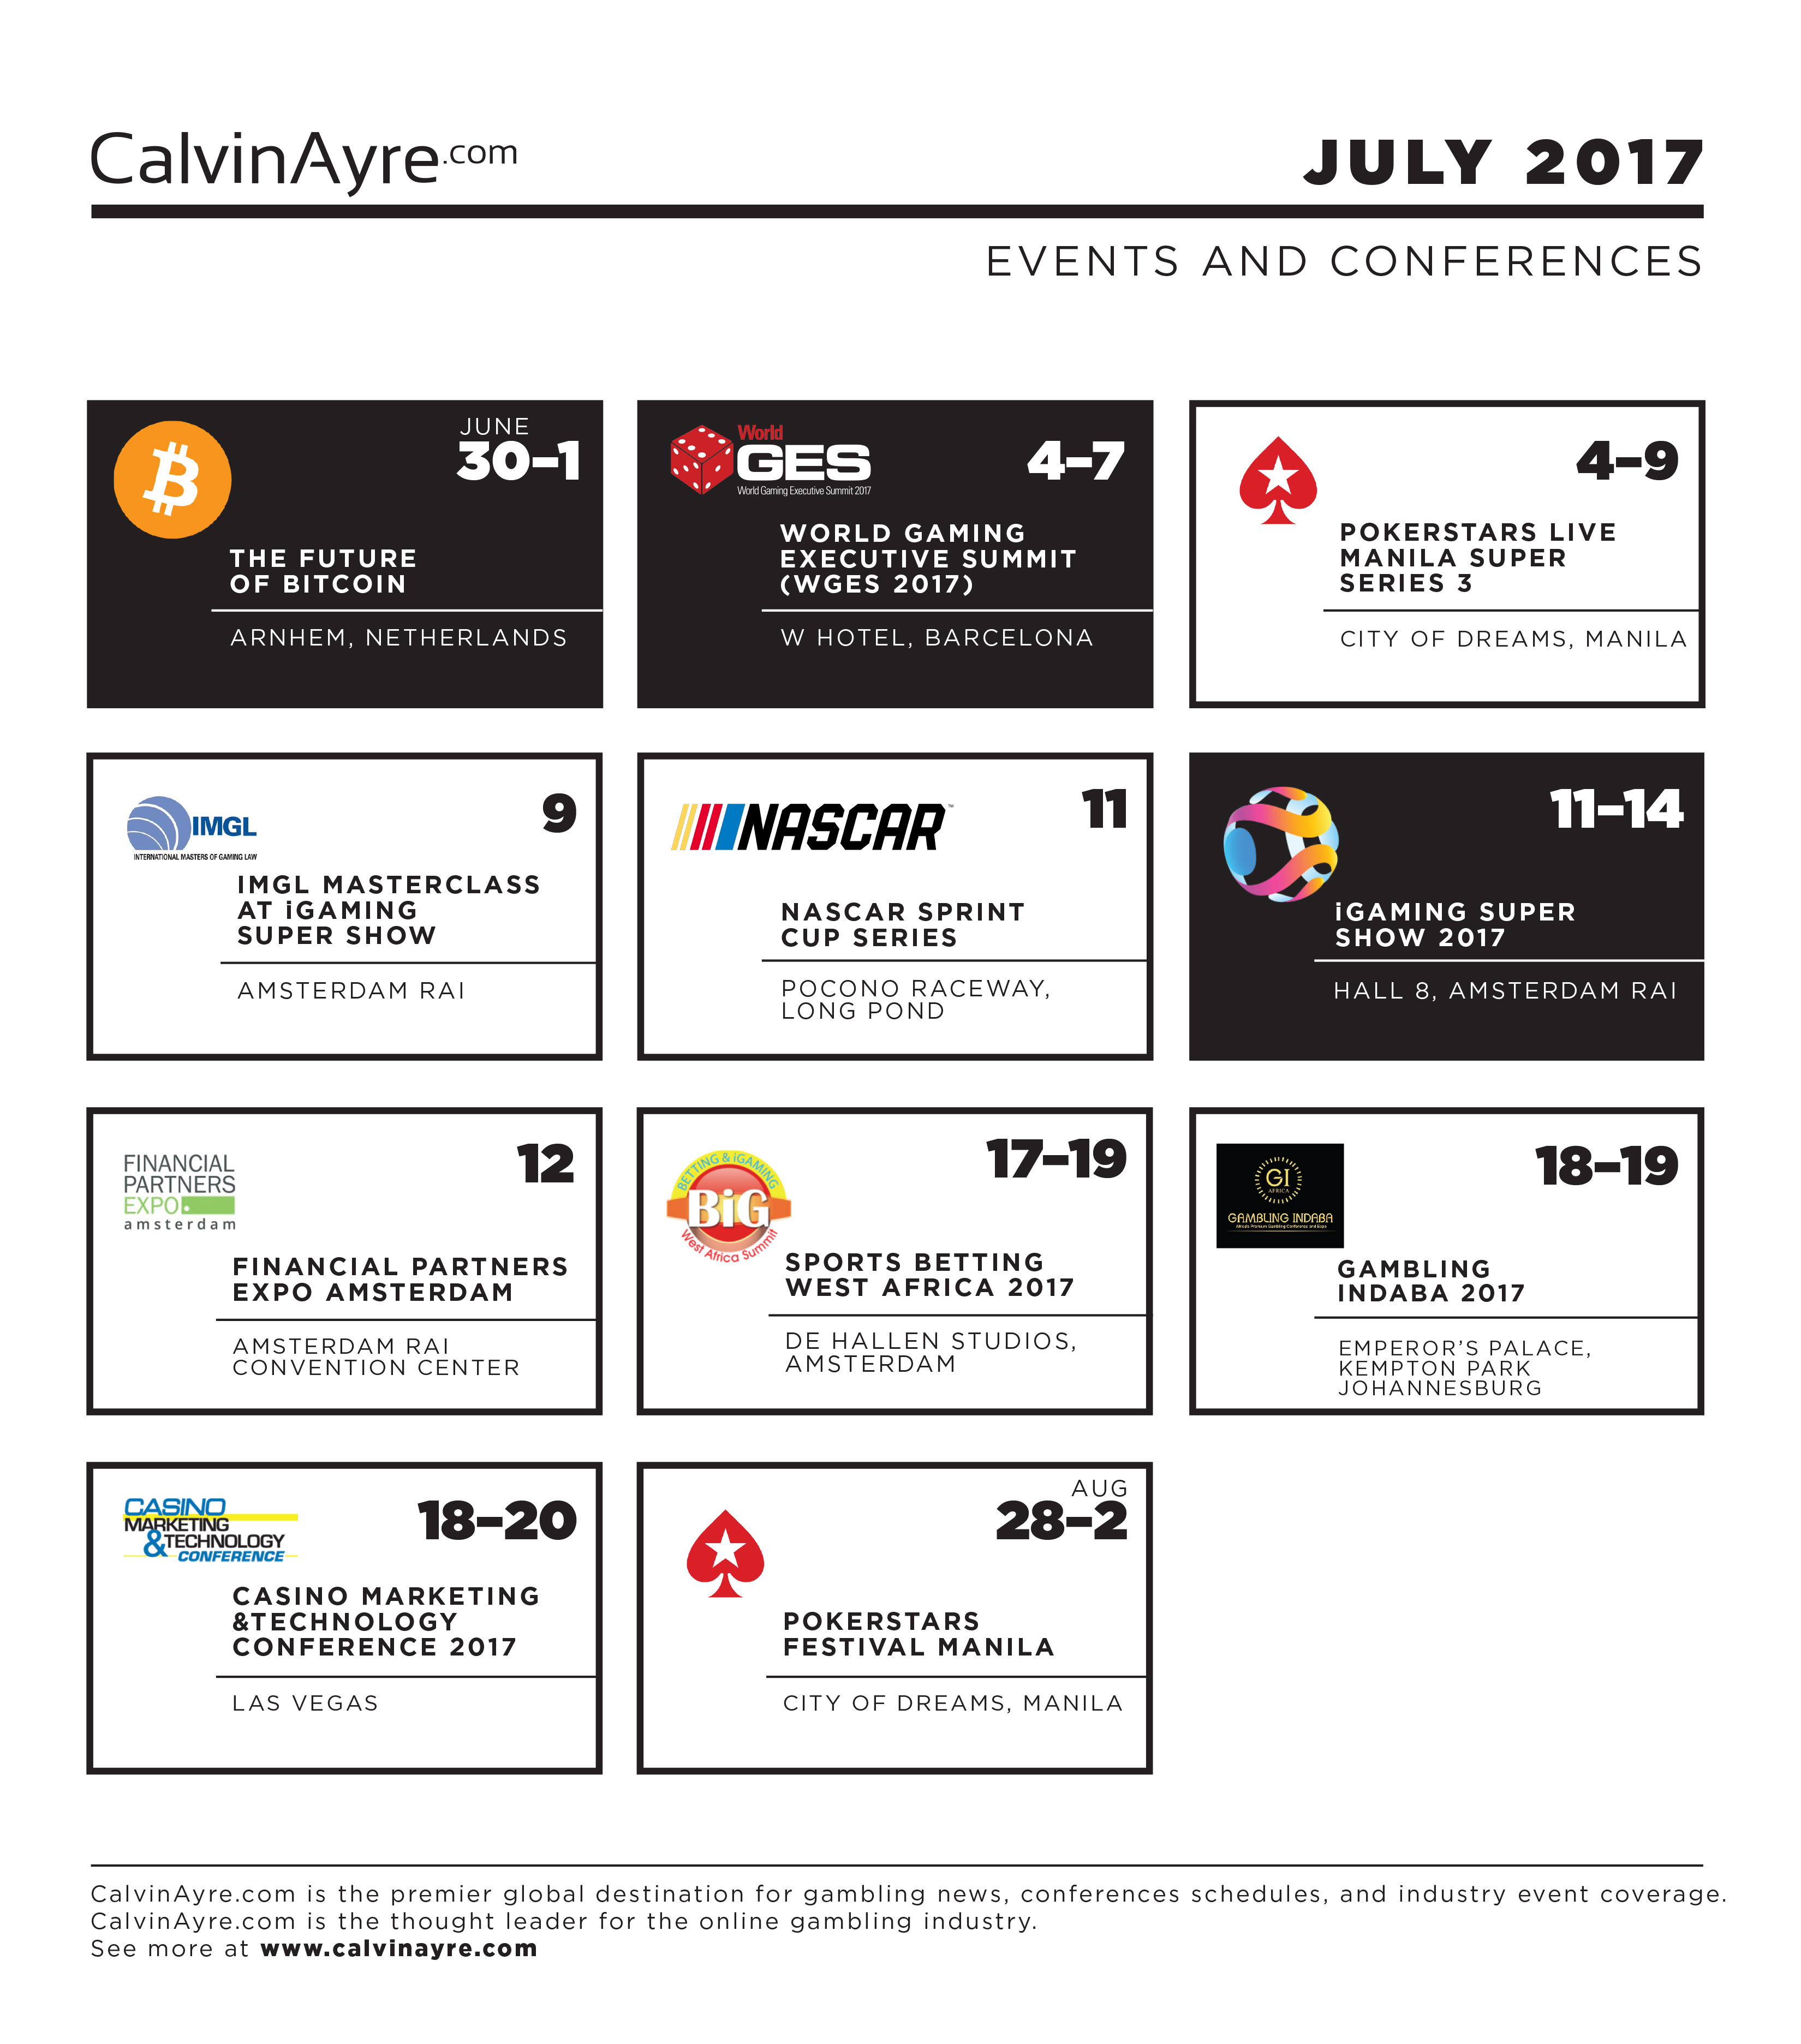 CalvinAyre.com featured conferences & events: July 2017